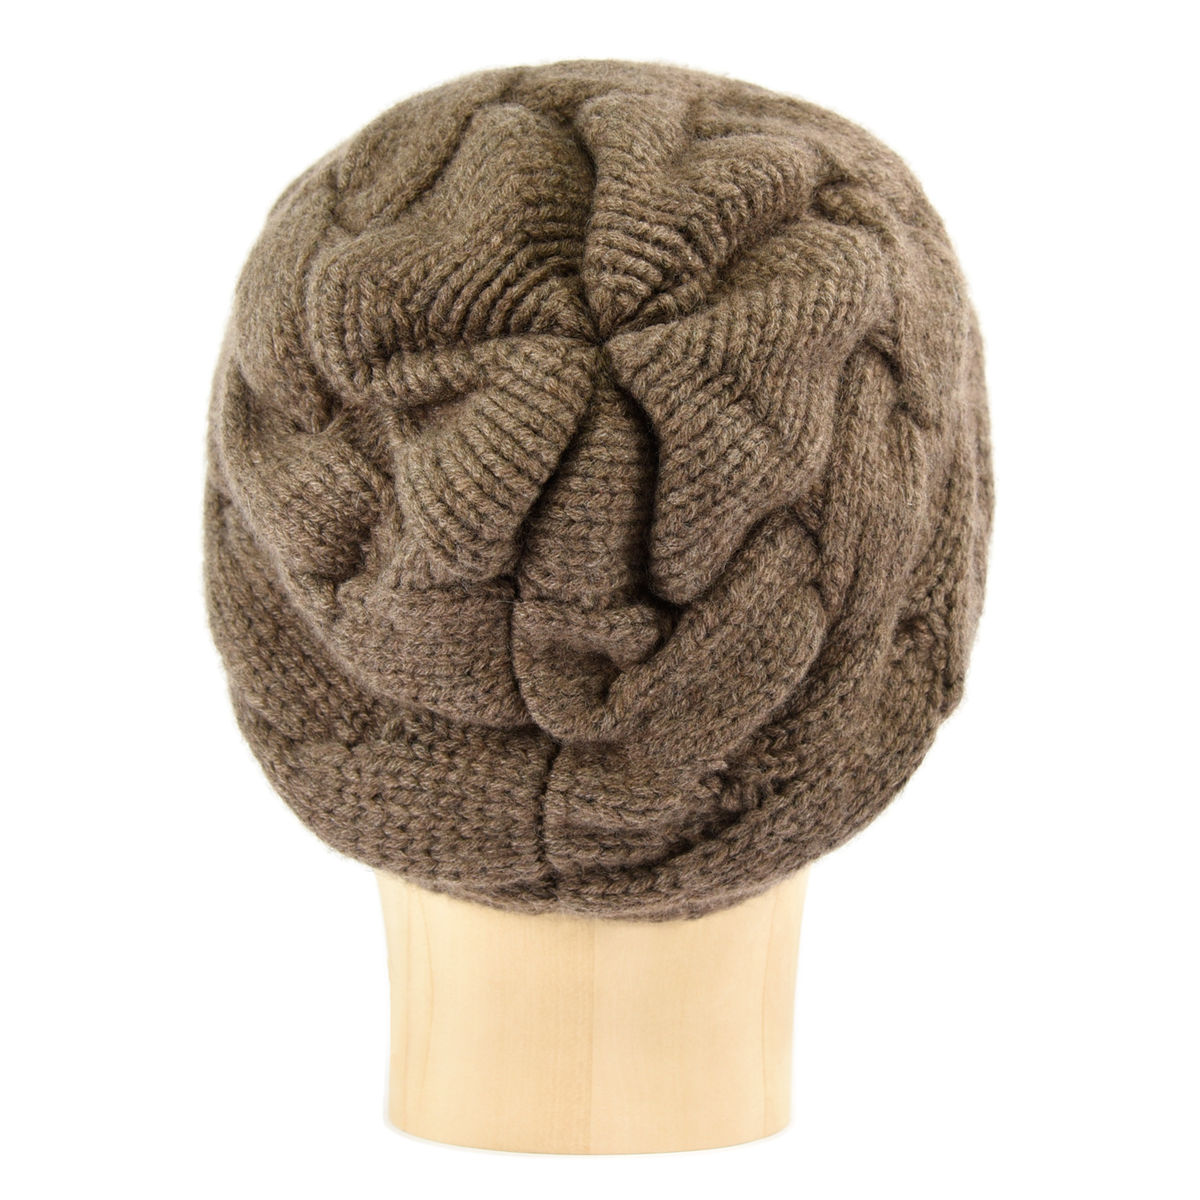 Chunky Braid Beanie - Legno - product images  of